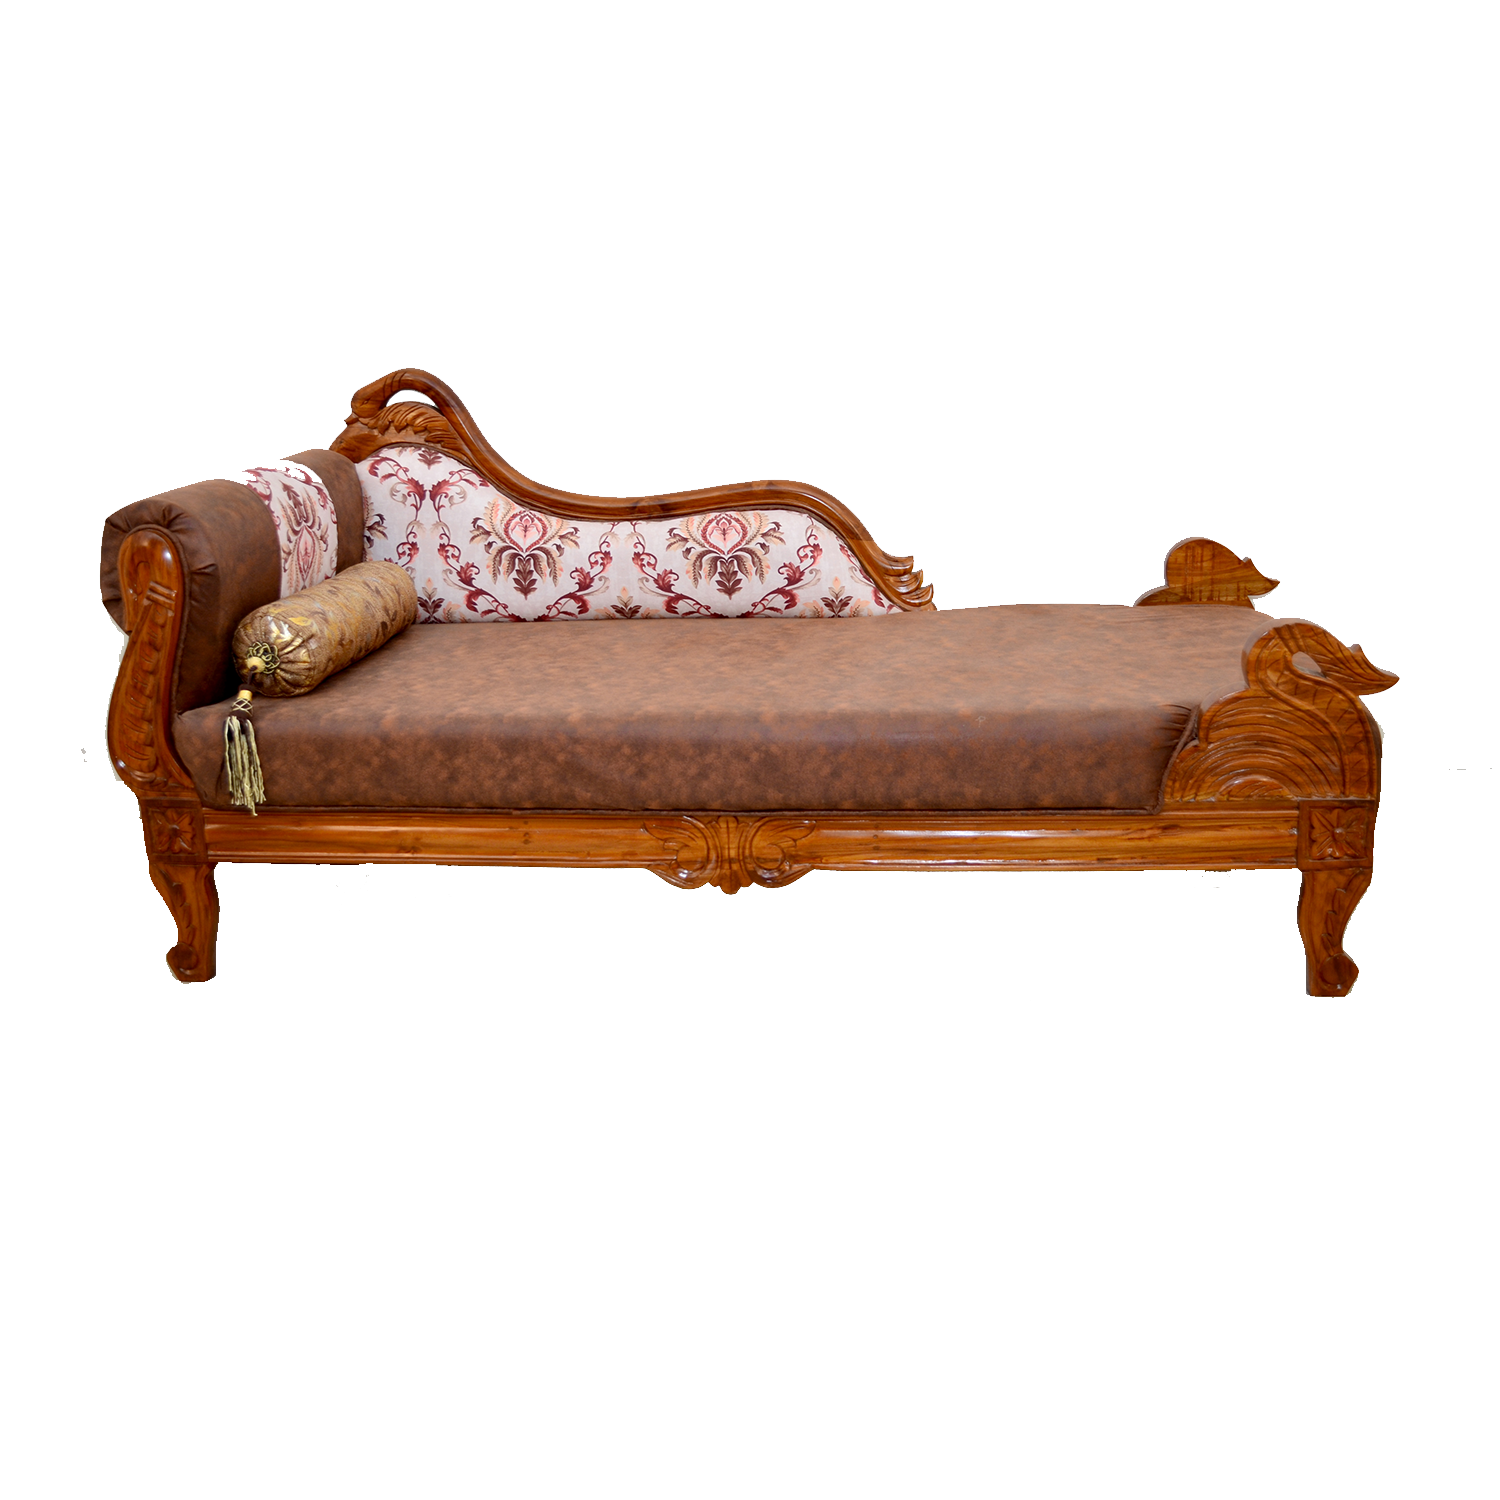 HERITAGE Teak Carved Couch